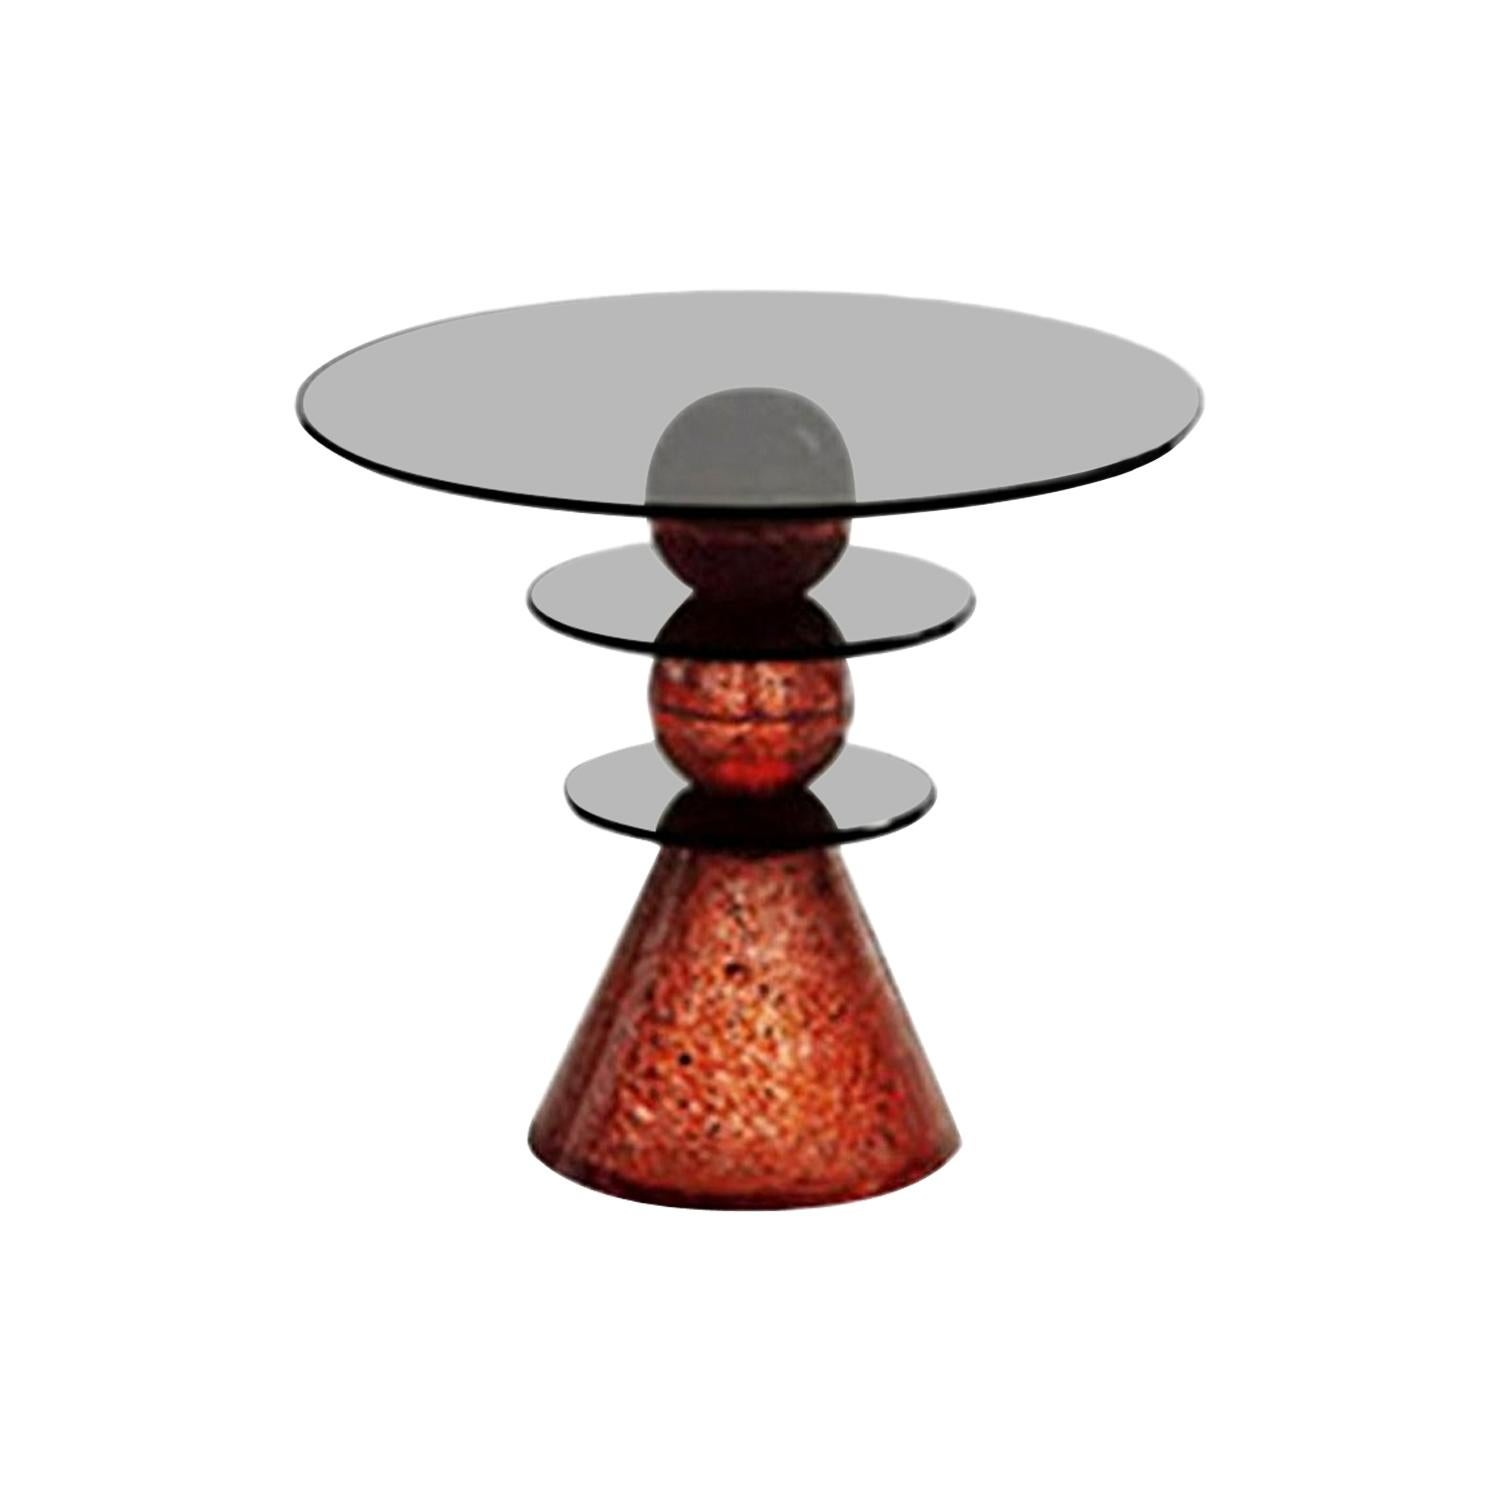 In Stock in Los Angeles, Red Glass Side Table by Paolo Lomazzi, Made in Italy